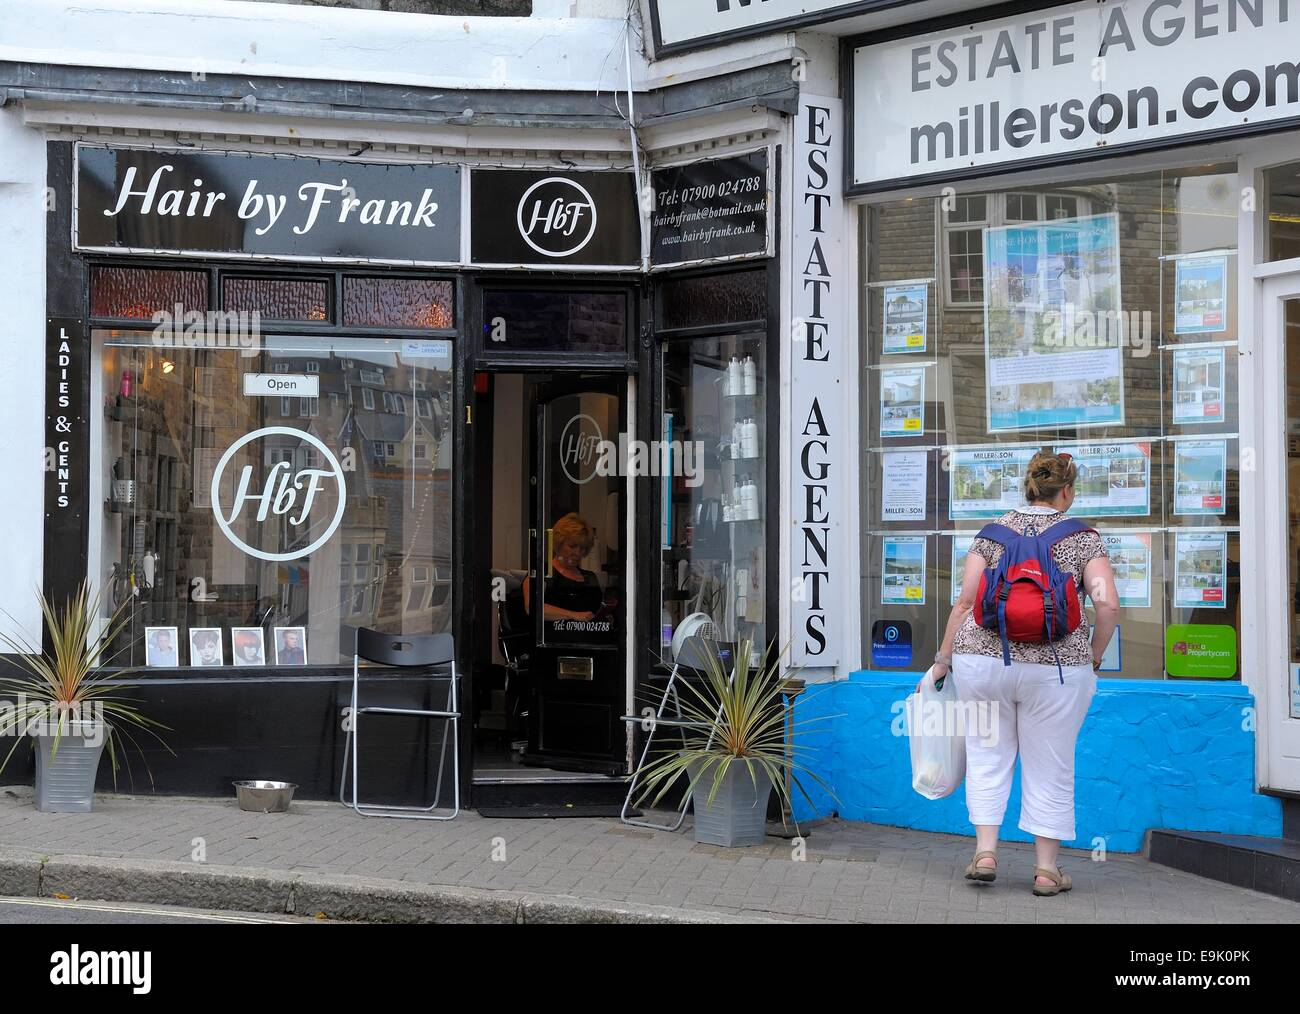 Hairdresser and estate agent next door to each other St Ives Cornwall England uk & Hairdresser and estate agent next door to each other St Ives ...